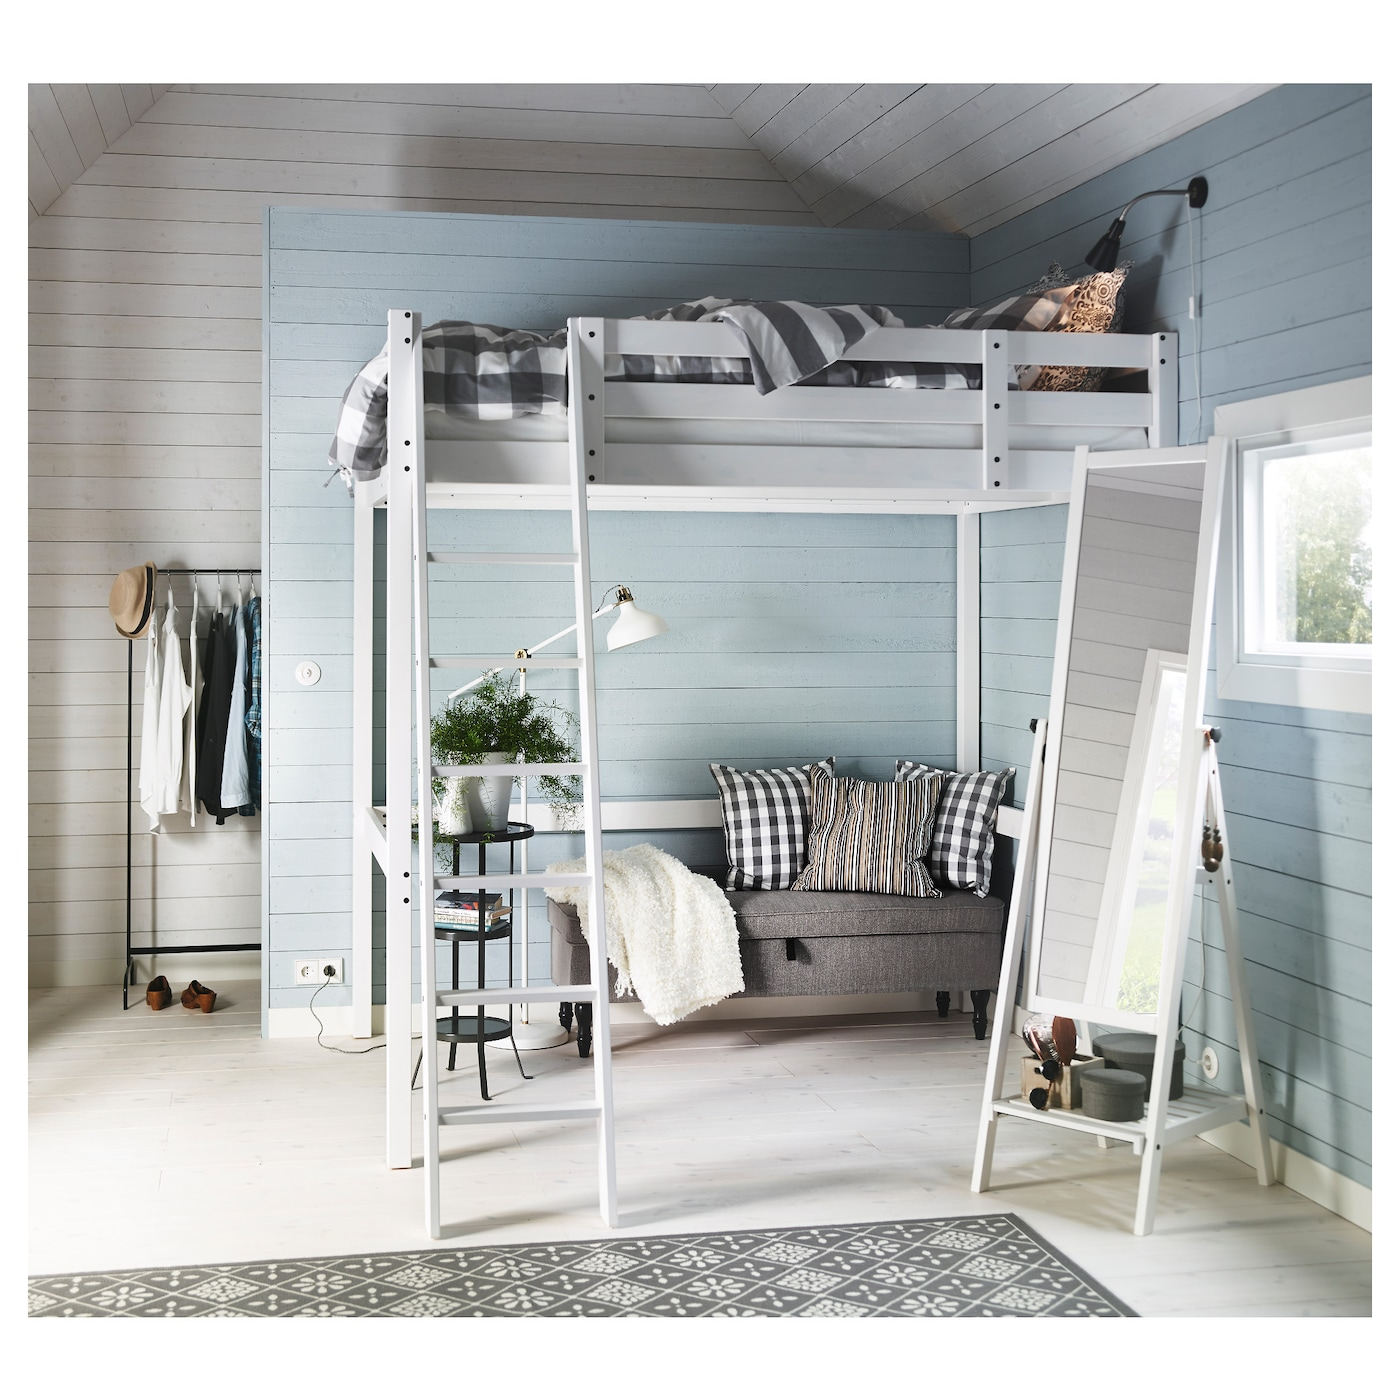 Genial IKEA STORÅ Loft Bed Frame You Can Use The Space Under The Bed For Storage,